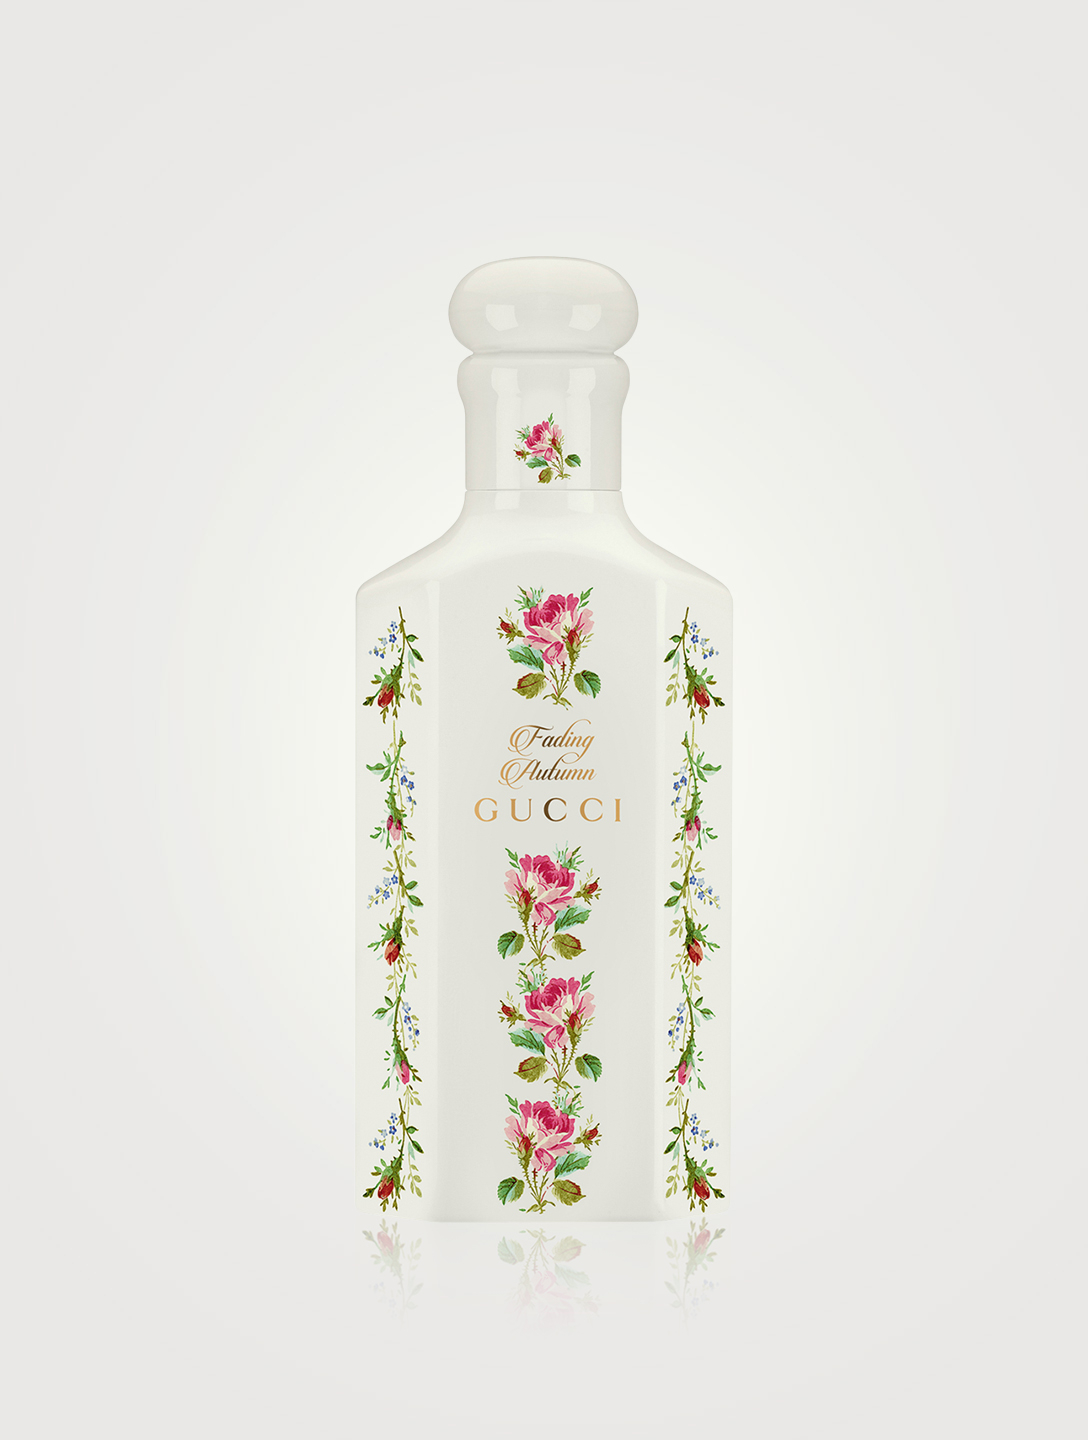 GUCCI The Alchemist's Garden Fading Autumn Acqua Profumata Collections